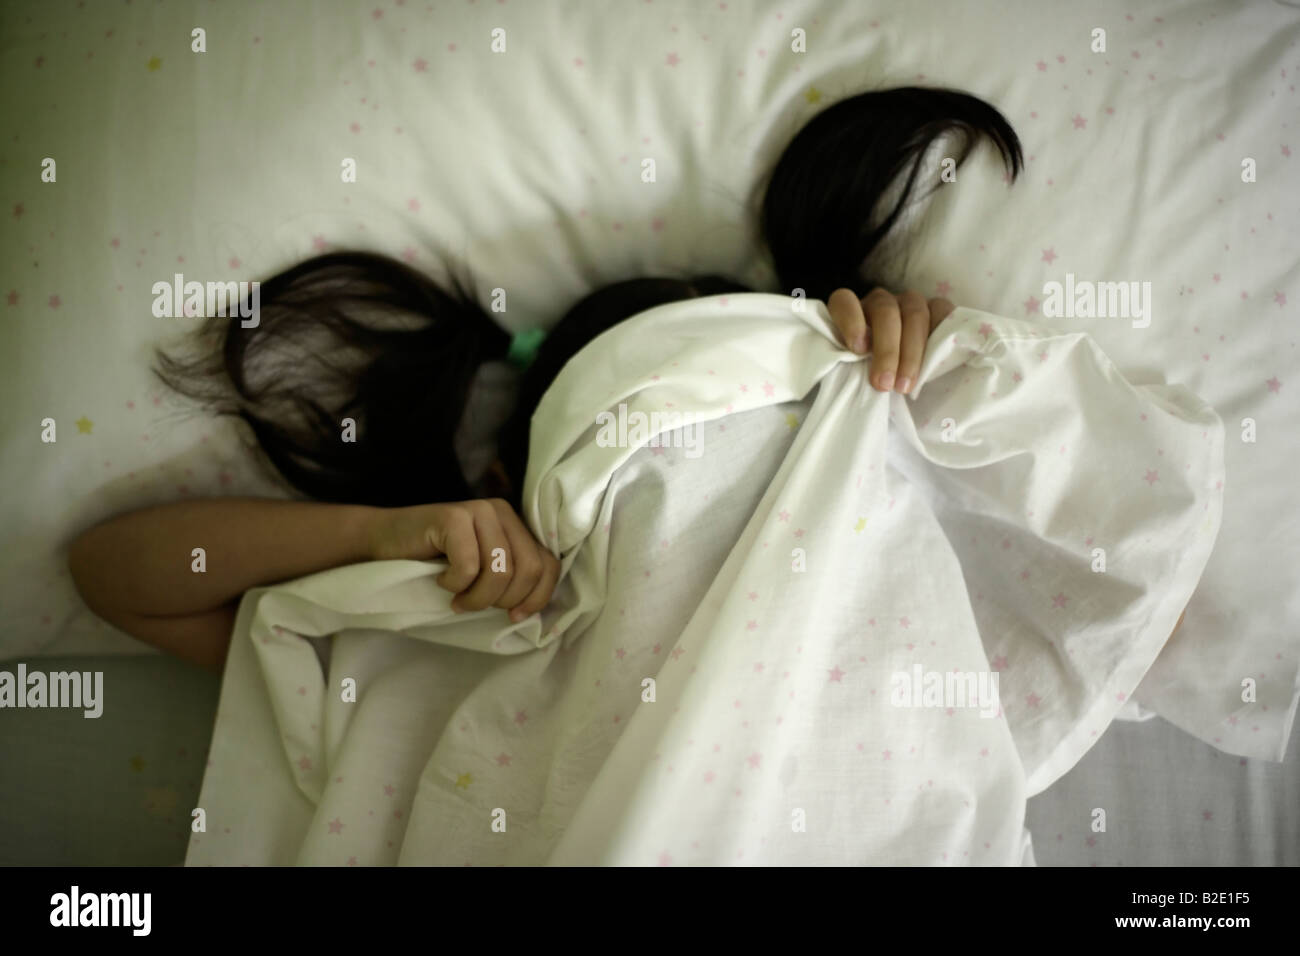 Five year old girl hides beneath sheets after tantrum Stock Photo